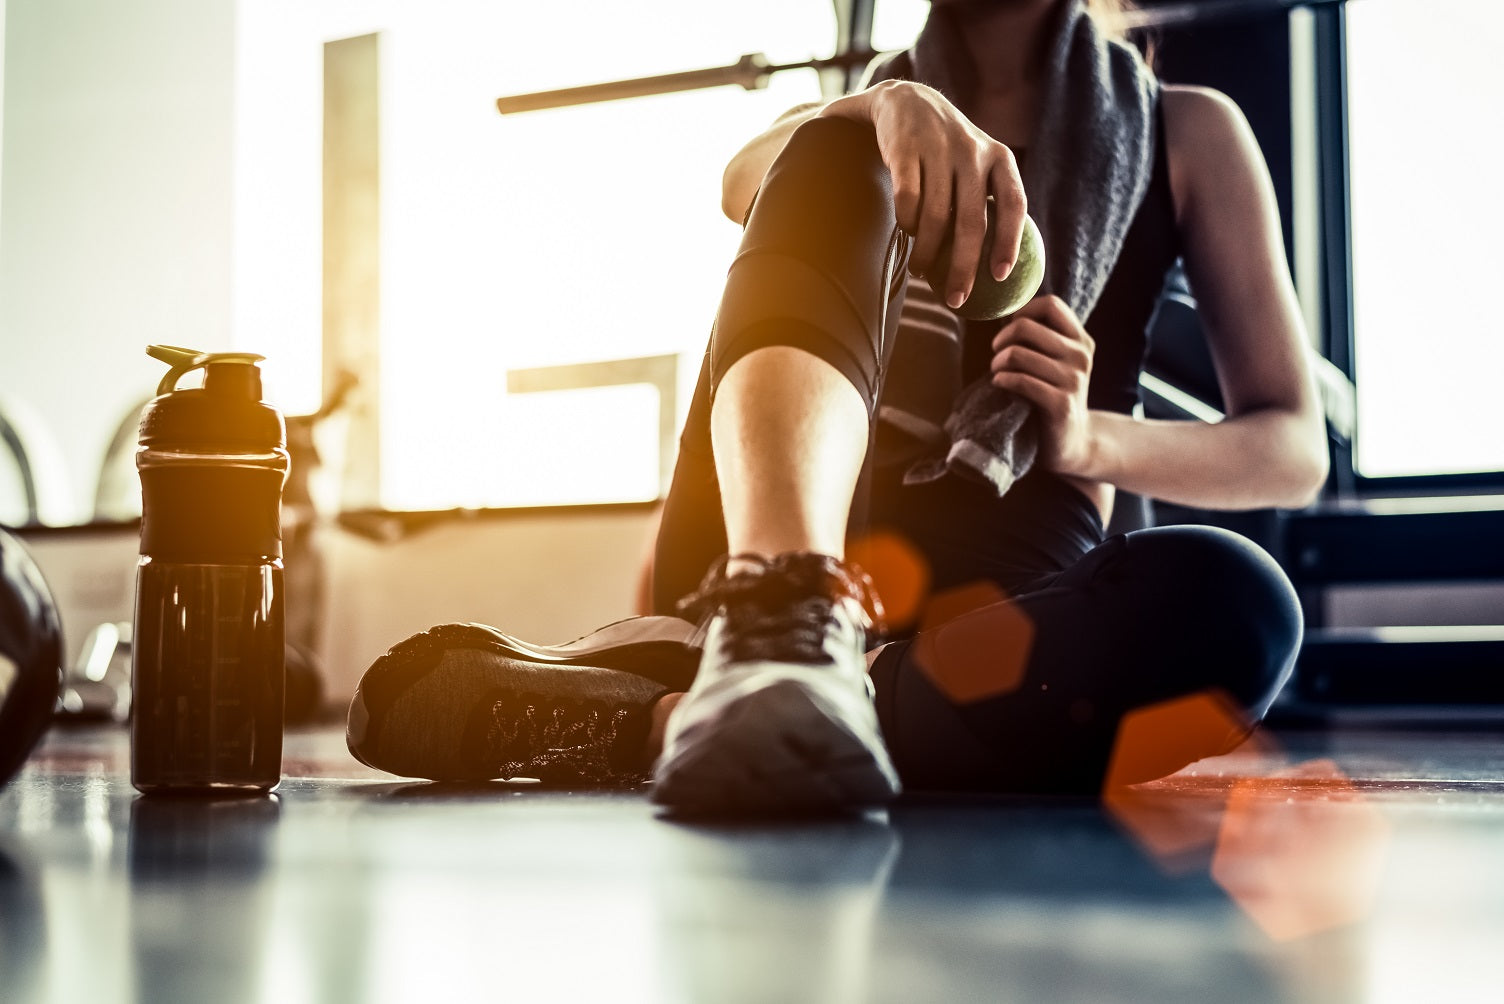 woman sits on floor after workout with apple and water bottle